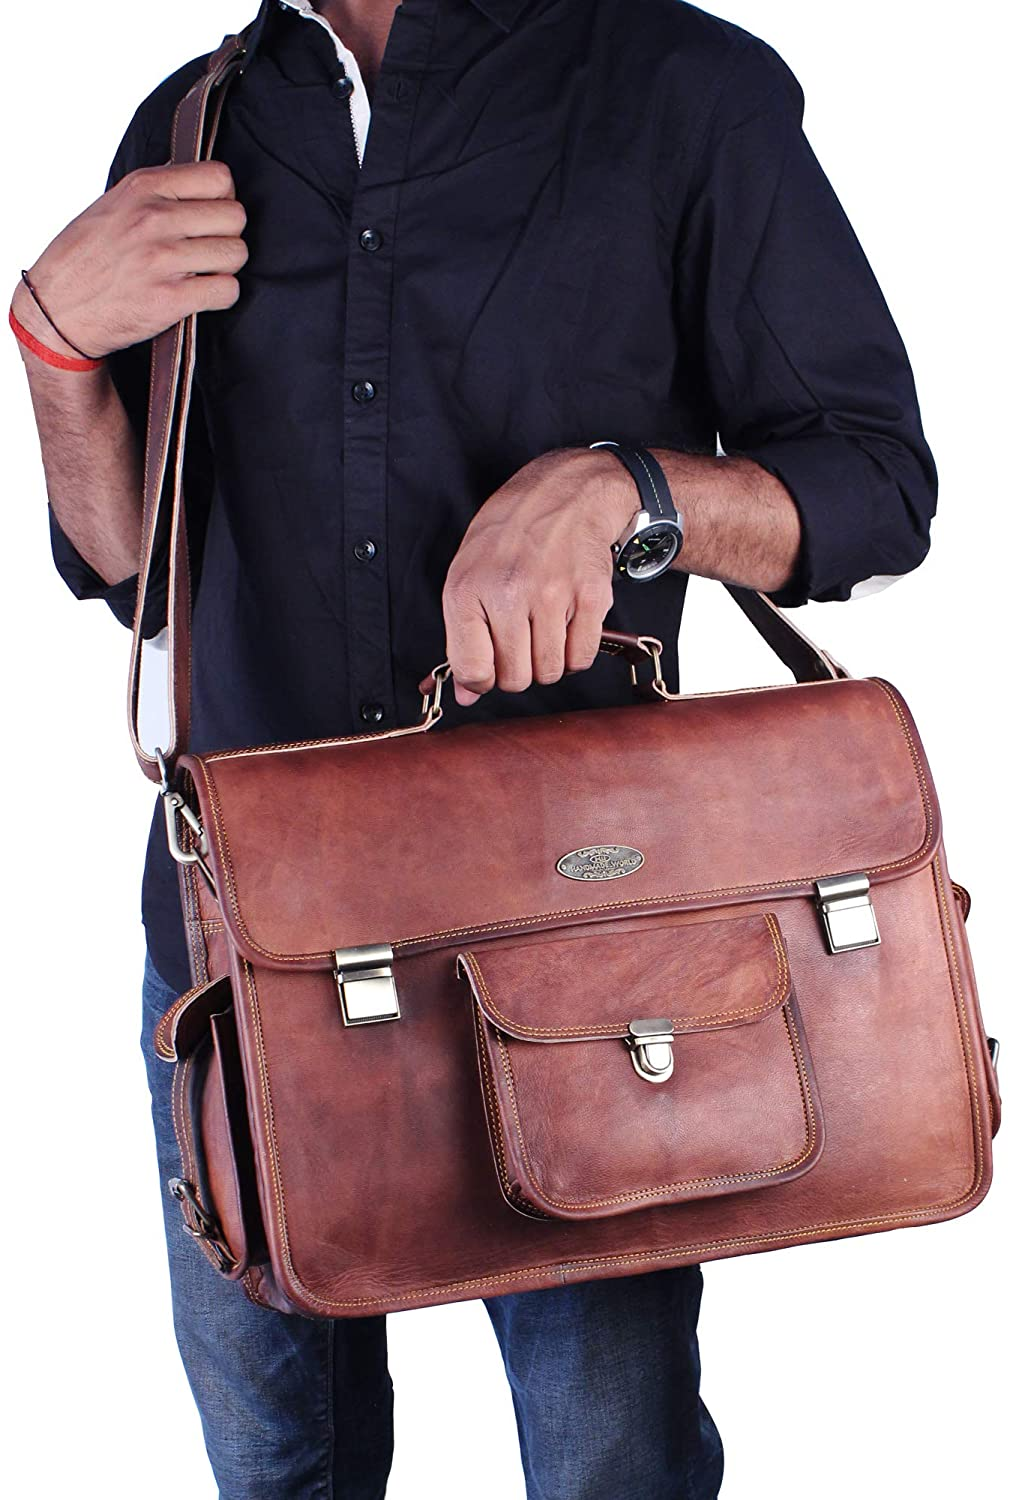 Large Leather Messenger Bag with Adjustable Shoulder Strap by Hulsh